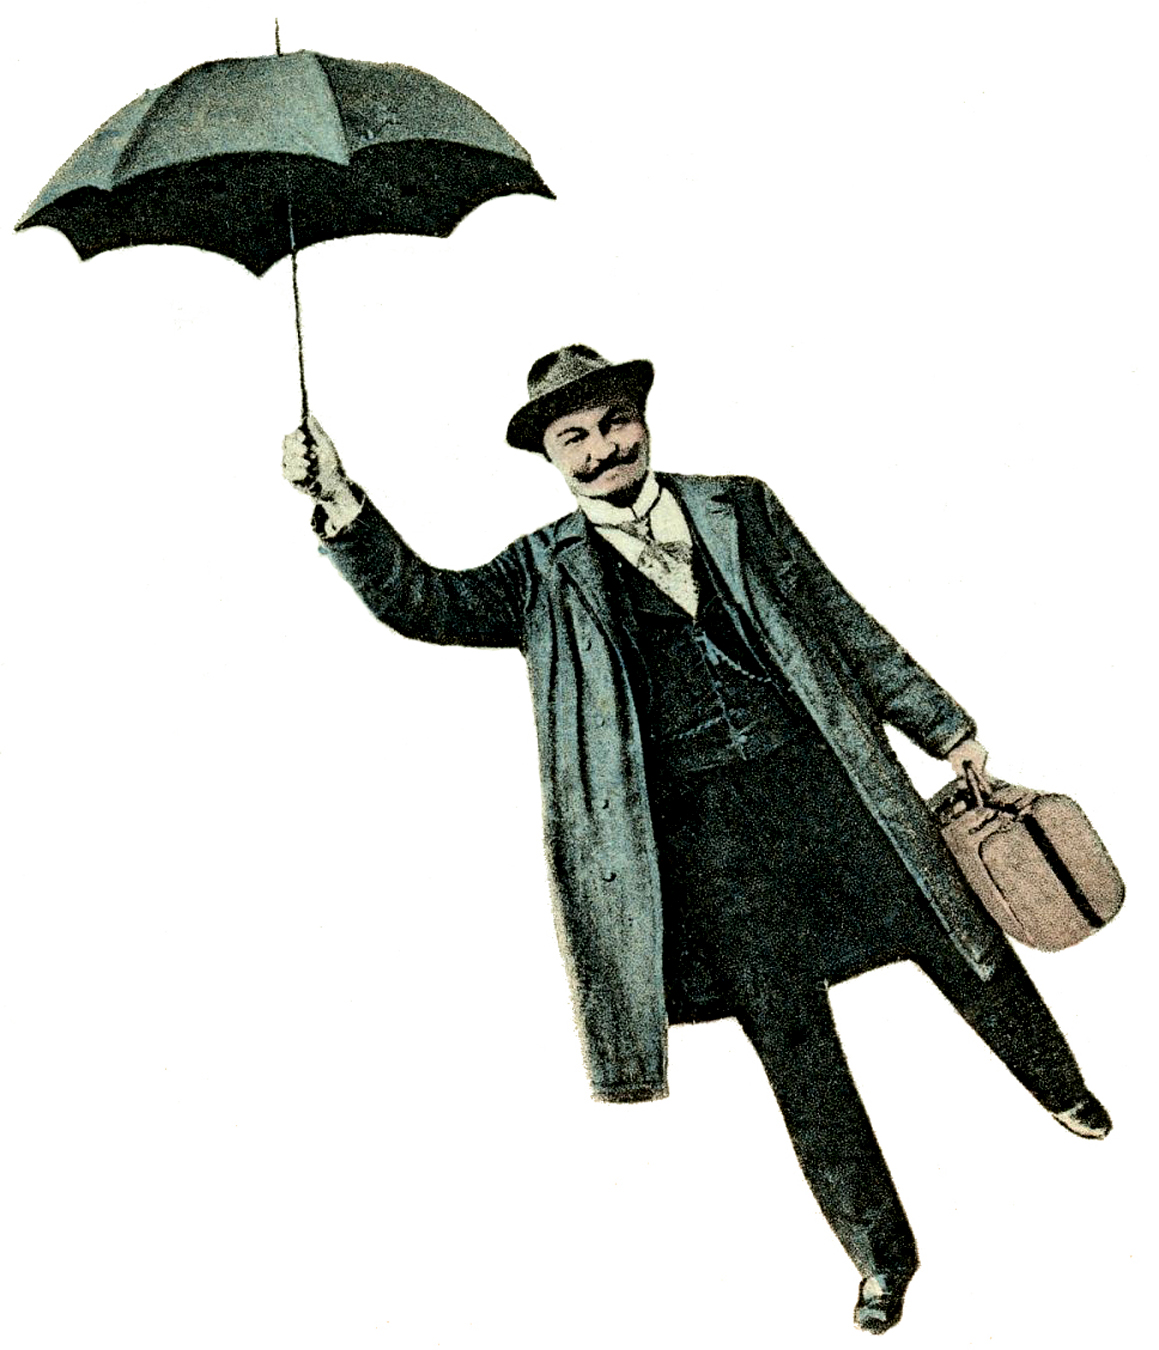 Patio Umbrella Flying Away: Flying Man With Umberella